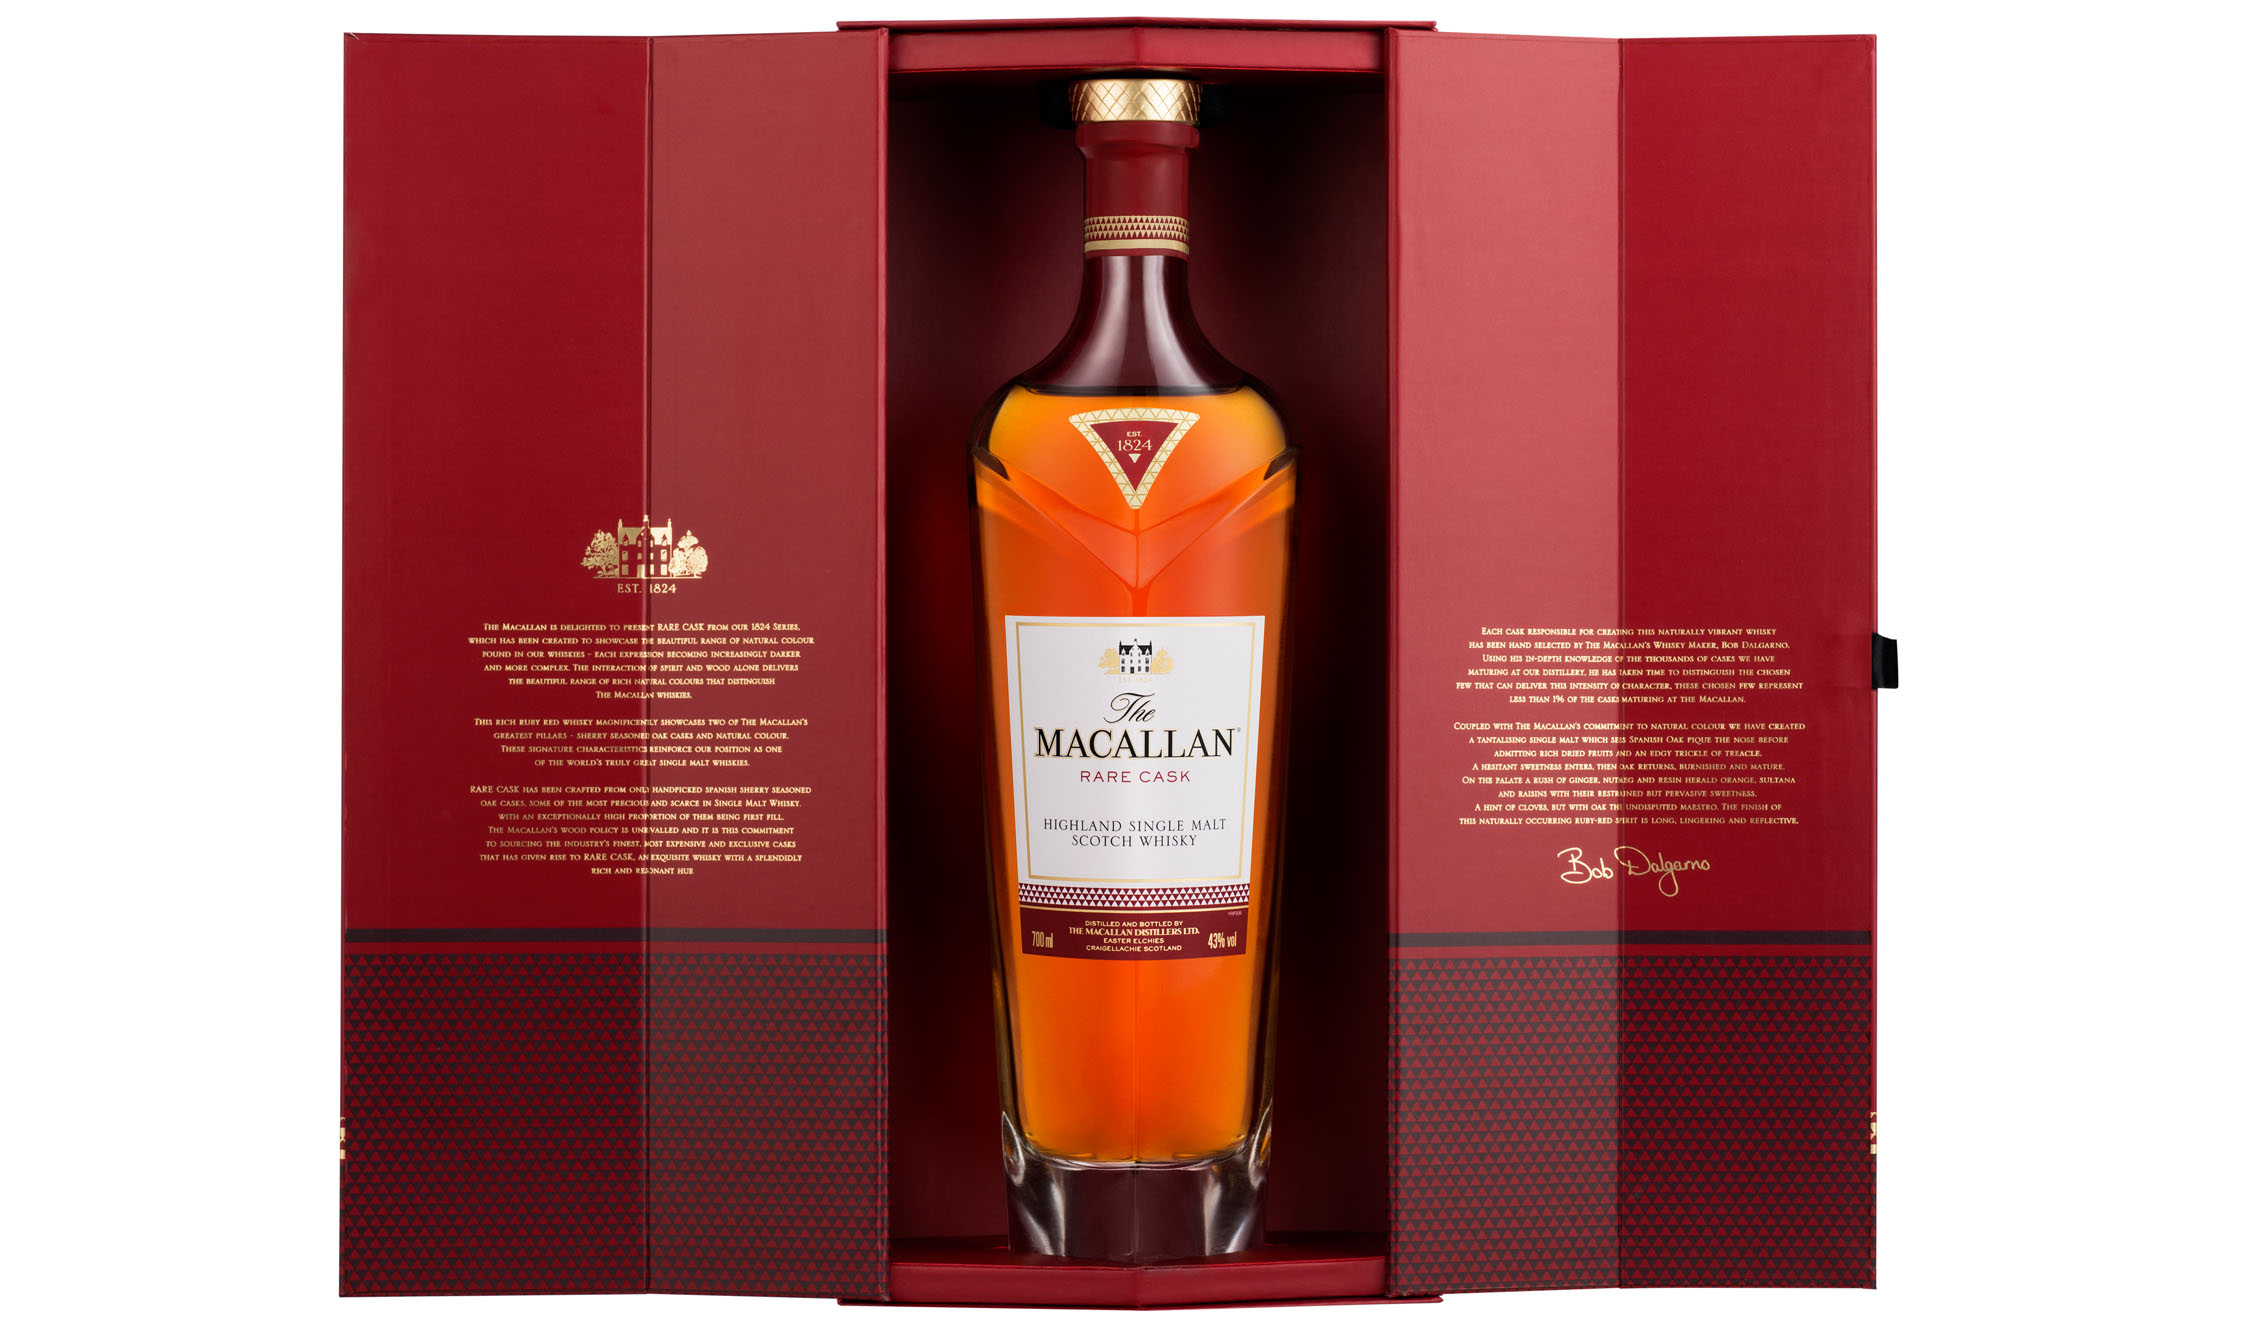 The Macallan Makes a Big NoAge Statement With Rare Cask